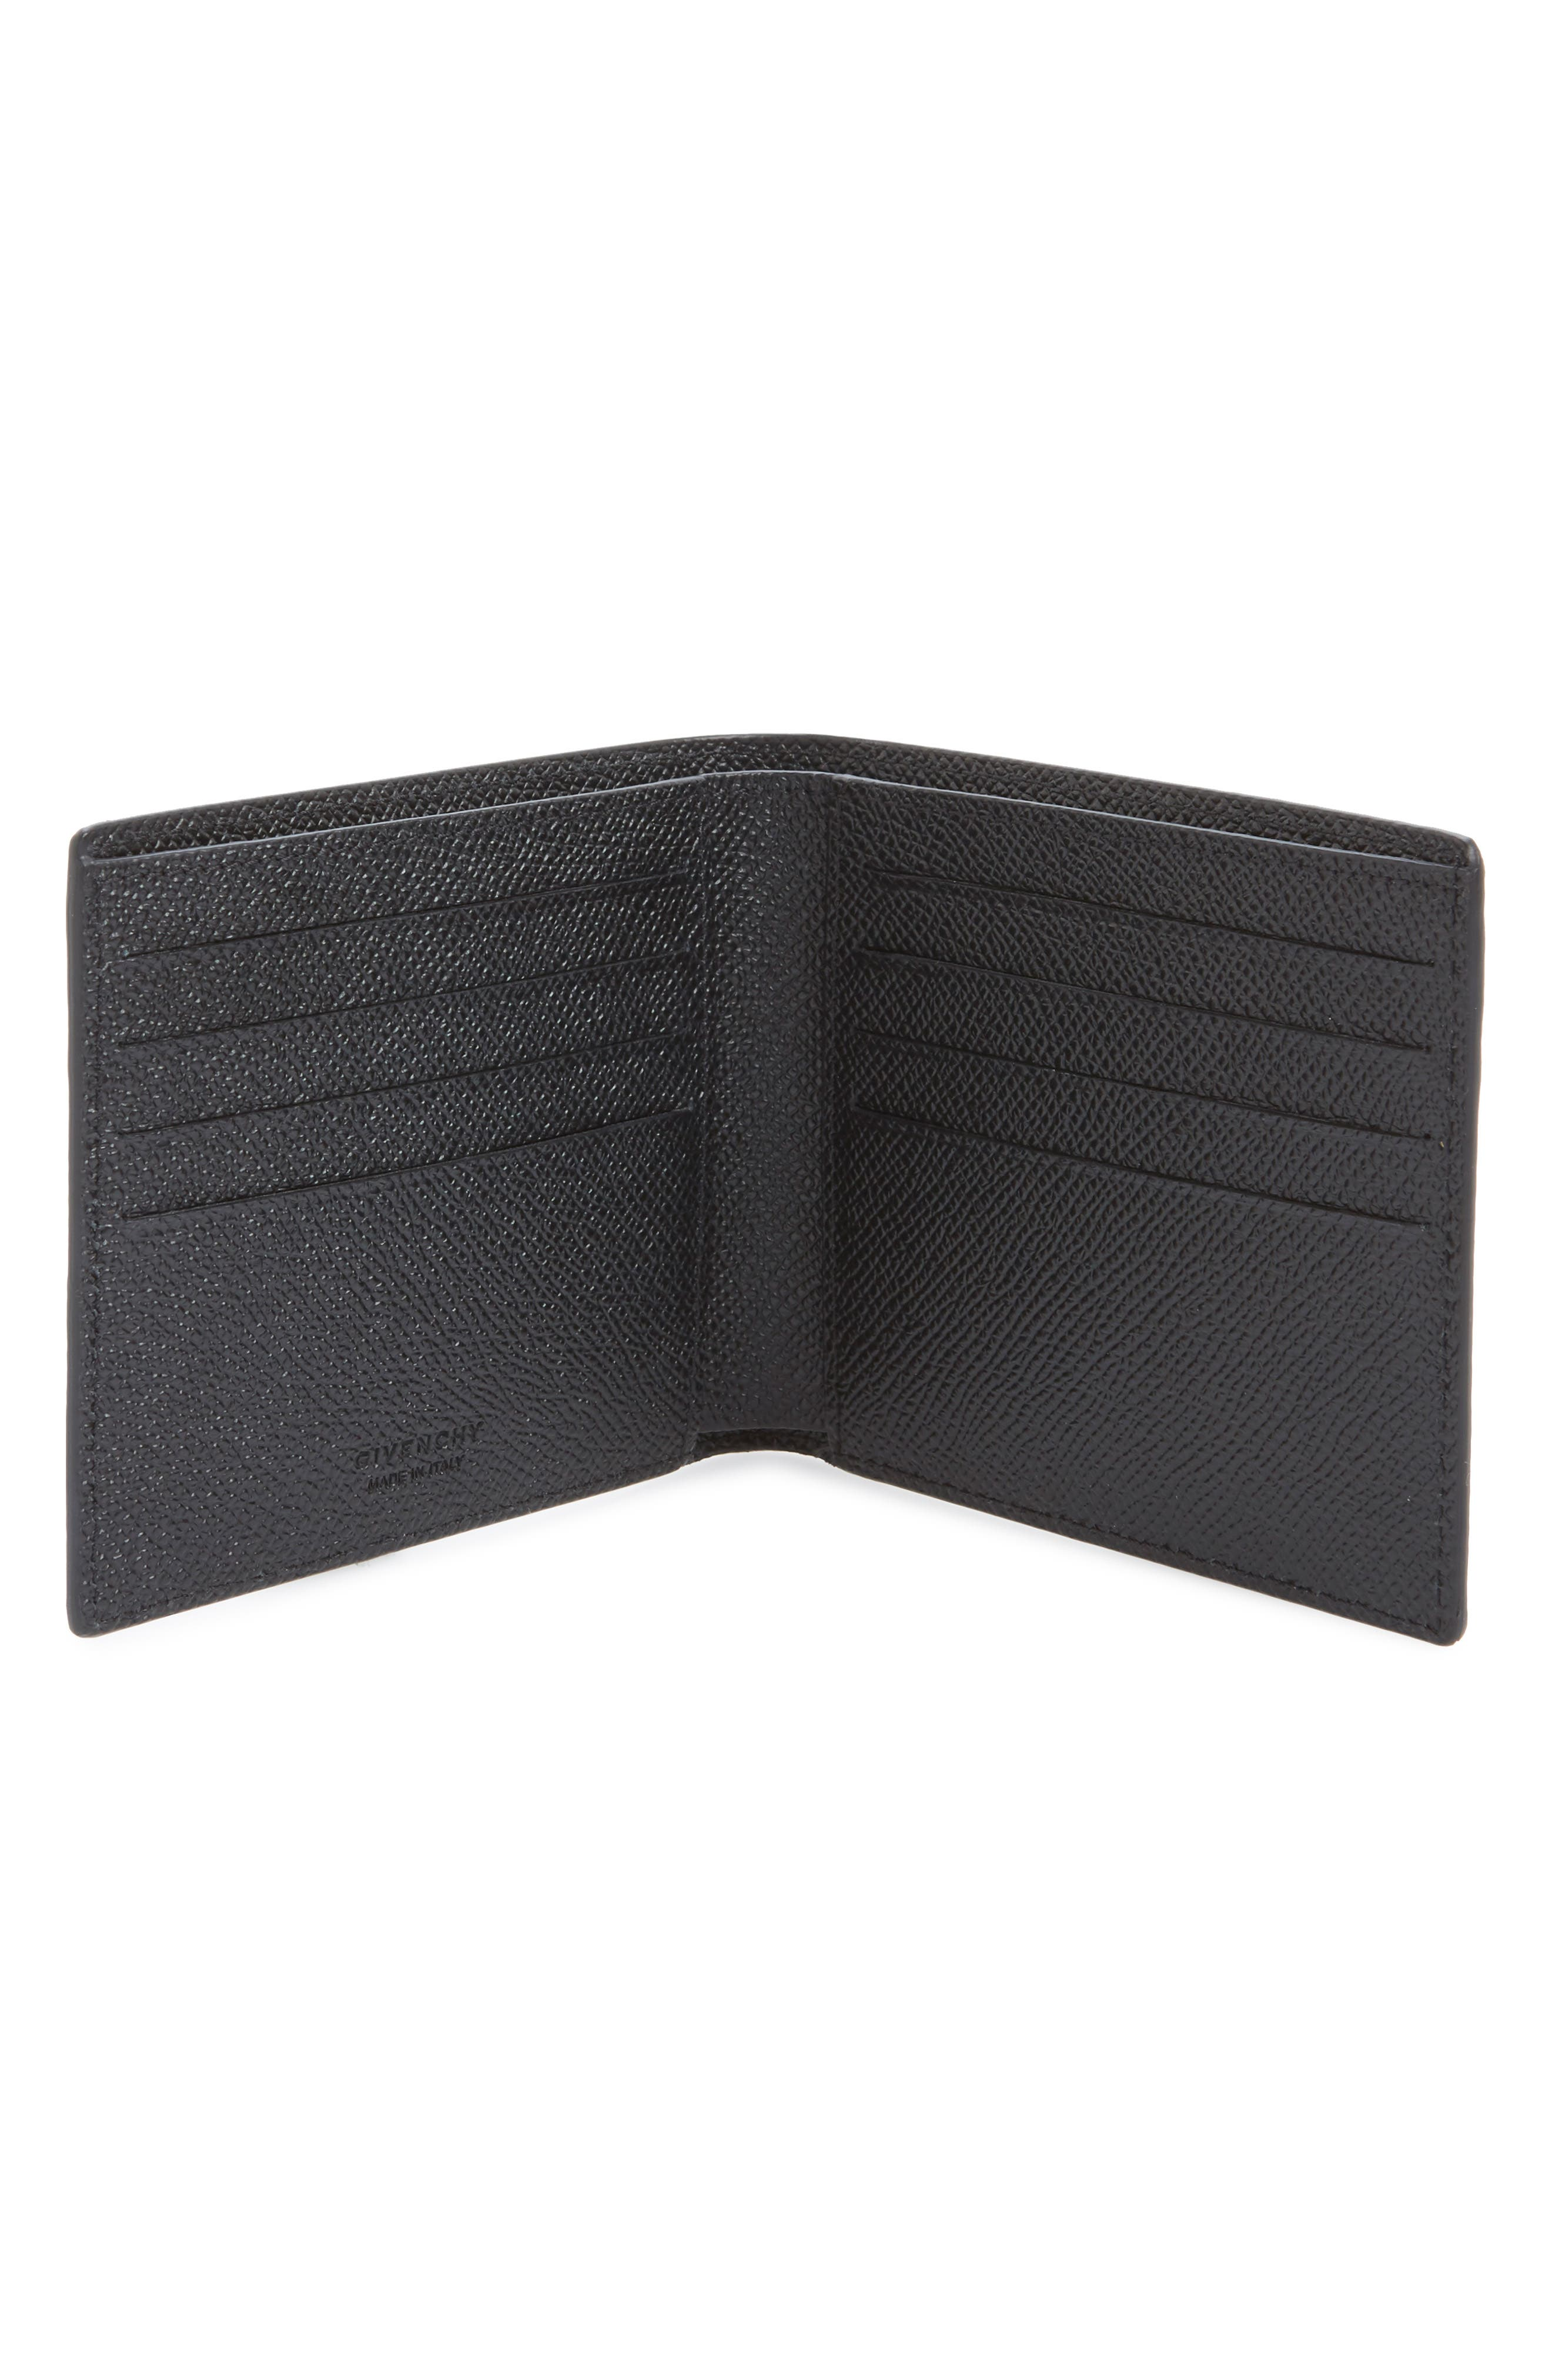 Calfskin Leather Bifold Wallet,                             Alternate thumbnail 3, color,                             BLACK